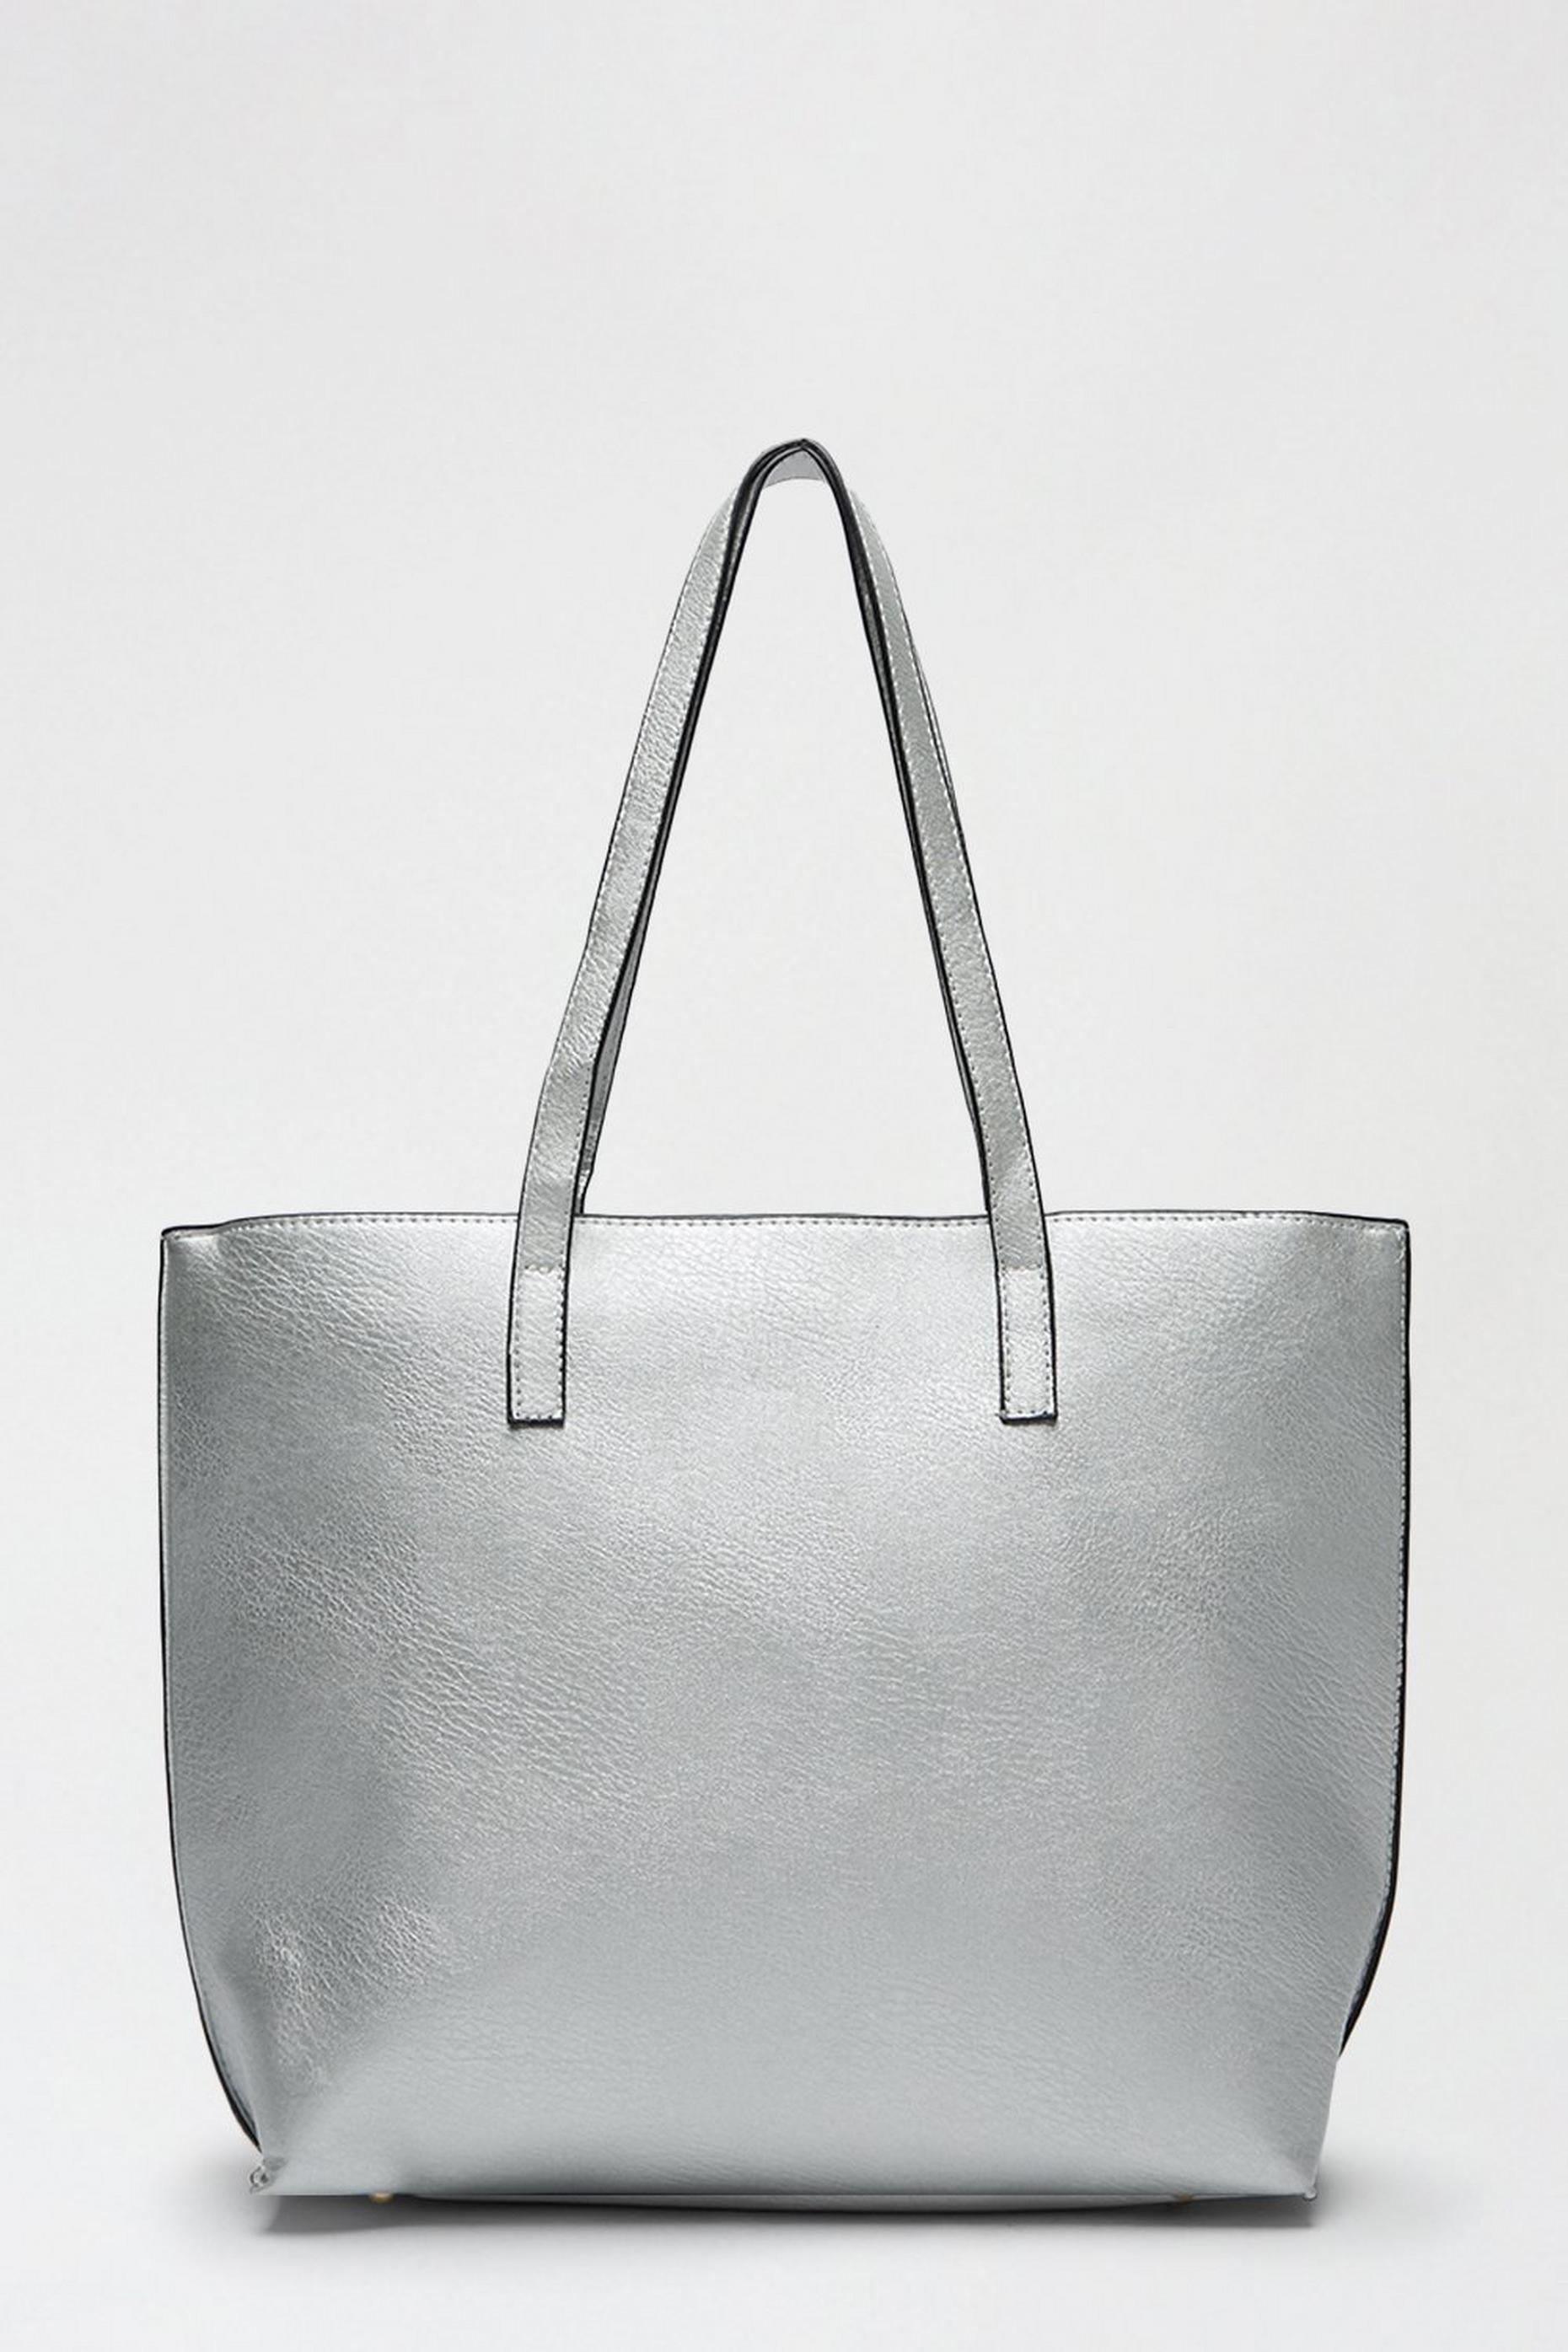 Metallic Silver Shopper Bag